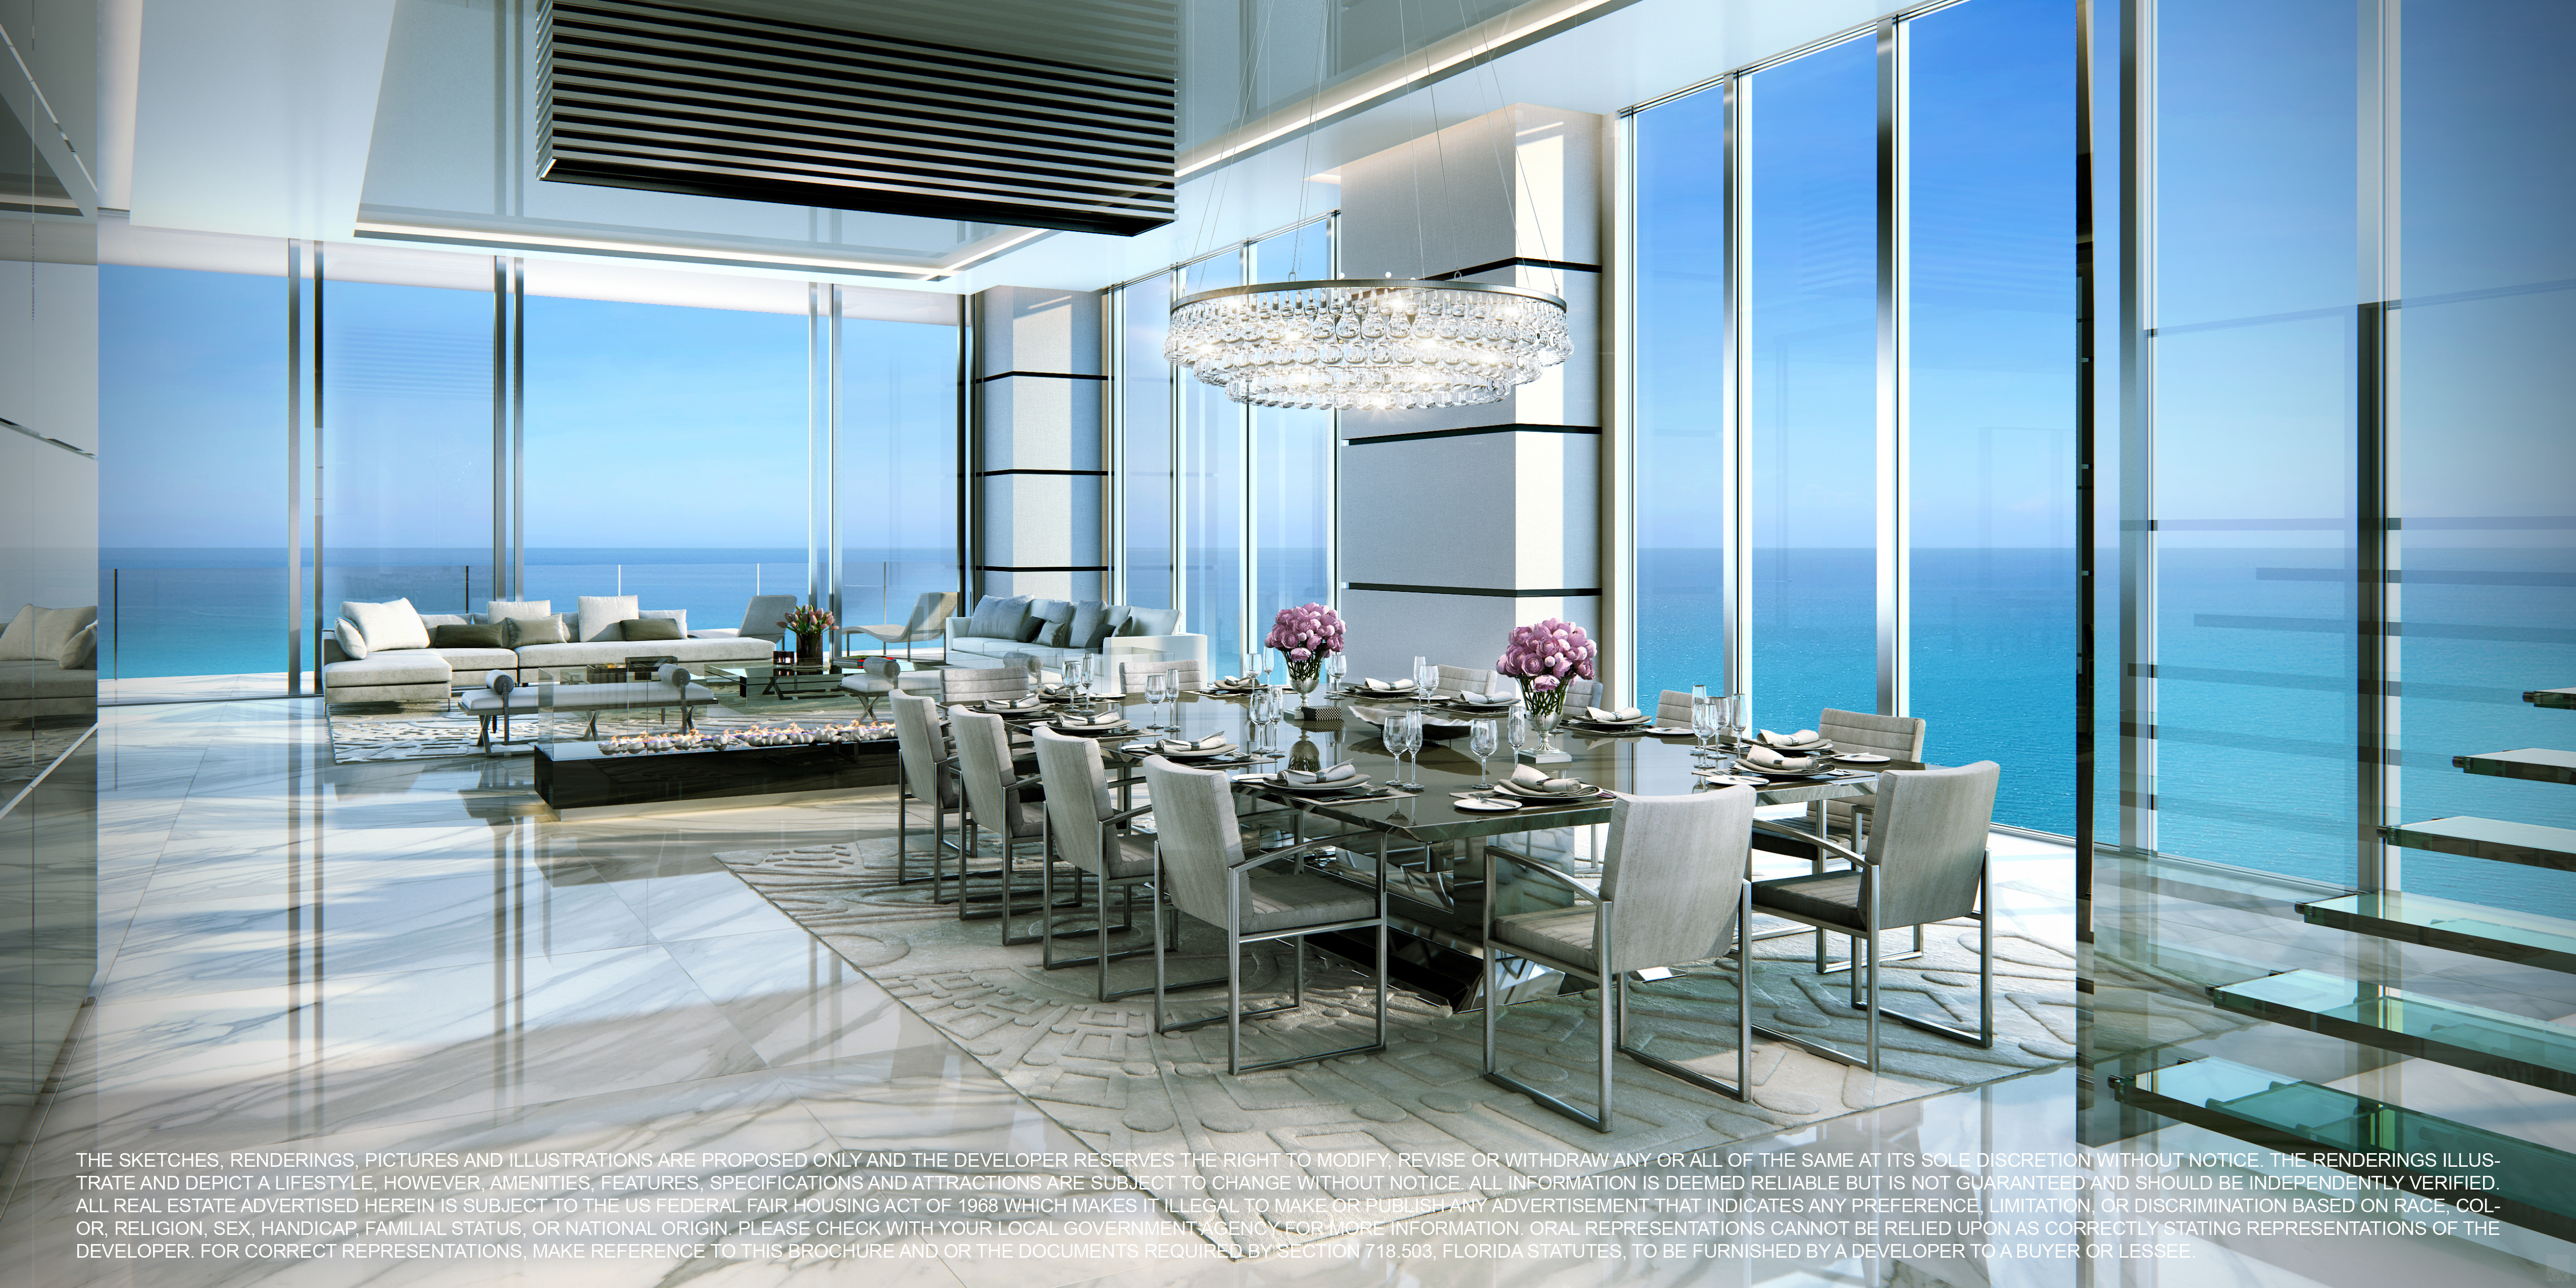 Bedroom Apartments For Sale In Miami